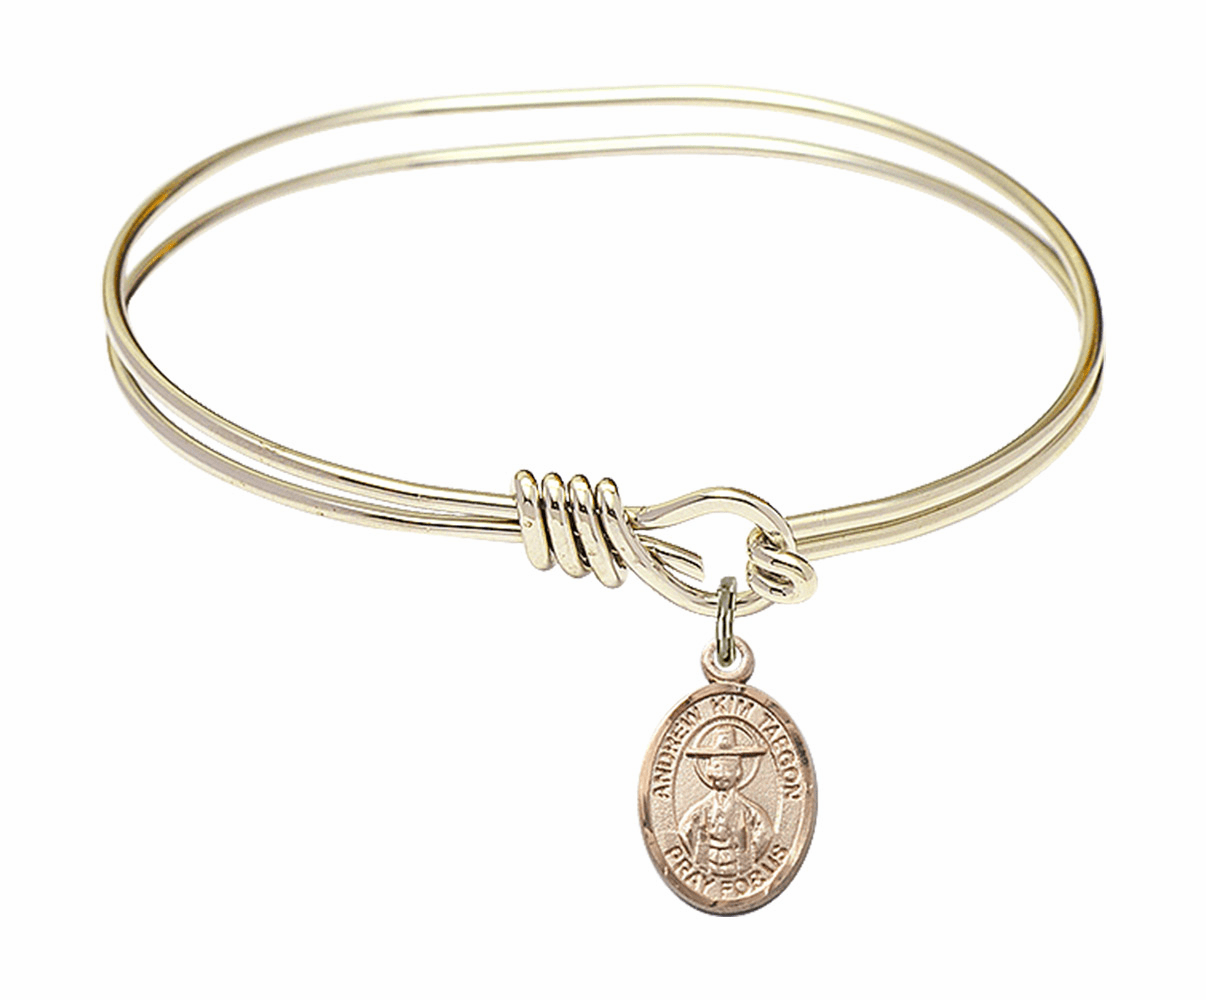 Round Loop St Andrew Kim Taegon Bangle 14kt Gold-filled Charm Bracelet by Bliss